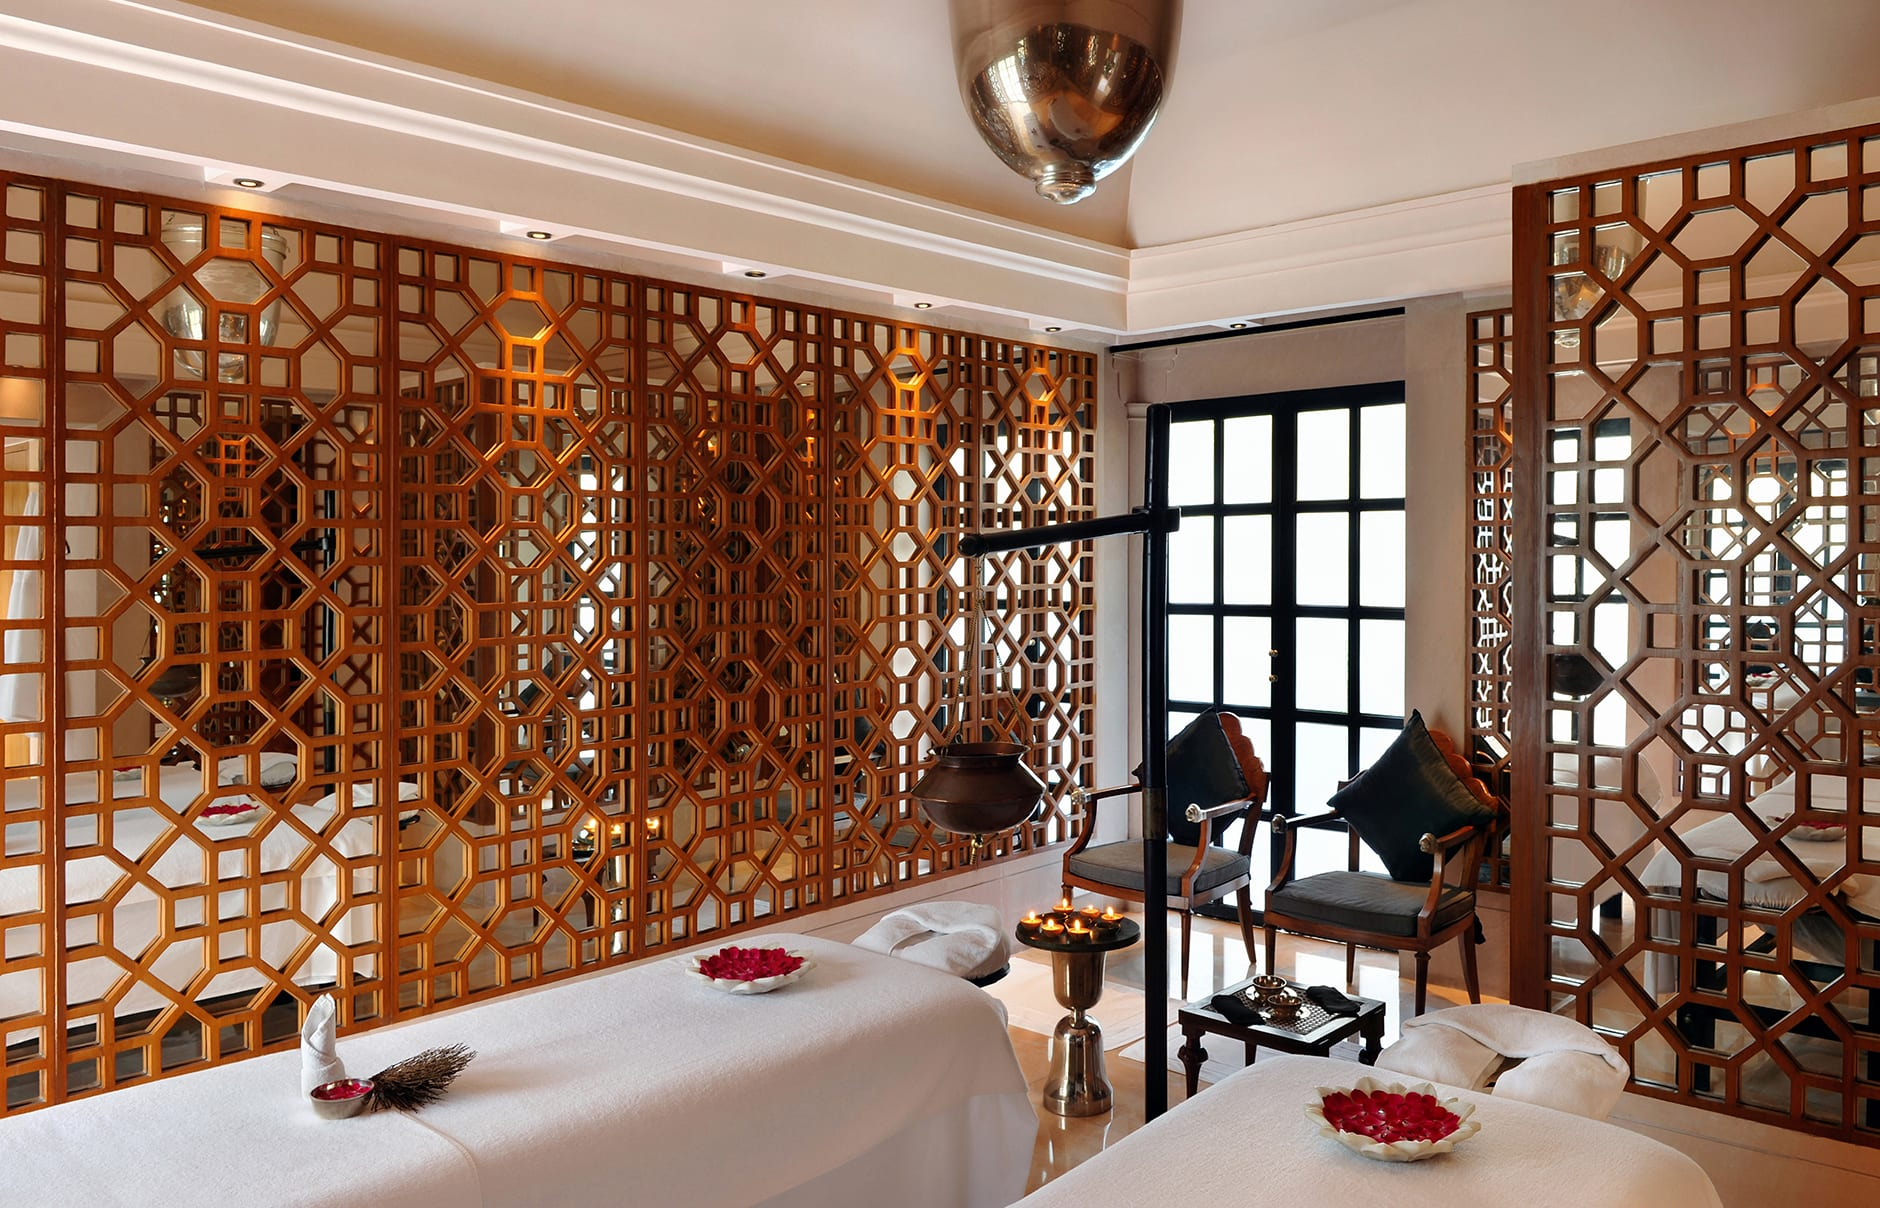 Spa Treatment Room. Amanbagh, Alwar, Rajasthan, India. Luxury Hotel Review by TravelPlusStyle. Photo © Aman Resorts